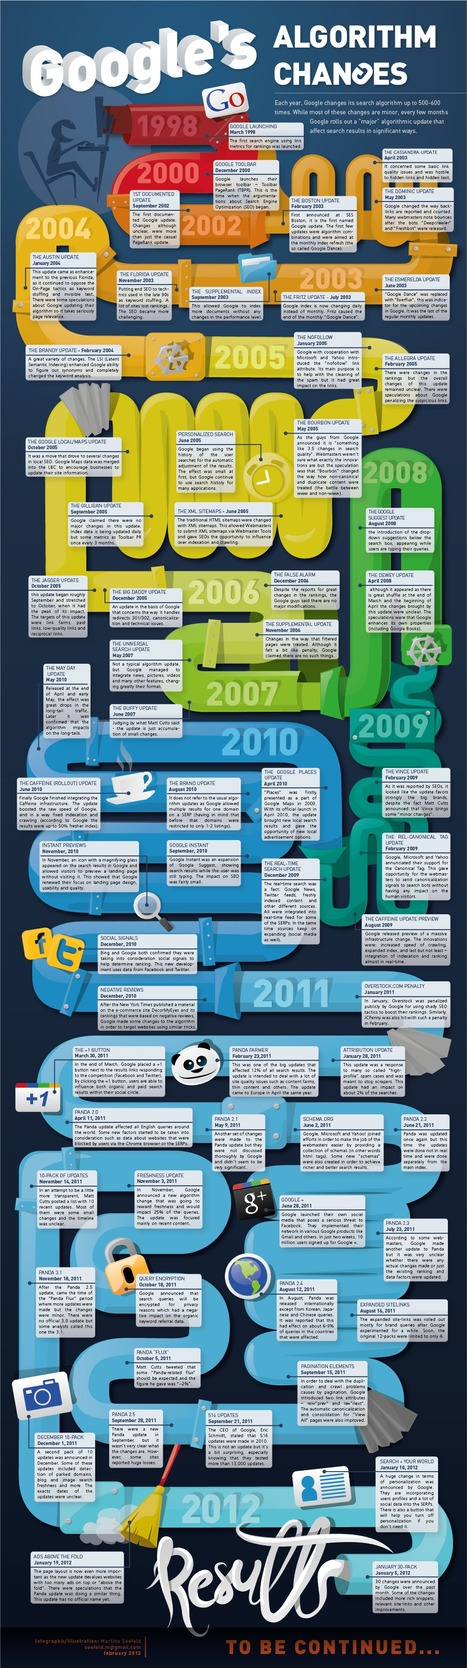 Google Algorithm Updates and Changes 1998-2012 Infographic | AtDotCom Social media | Scoop.it